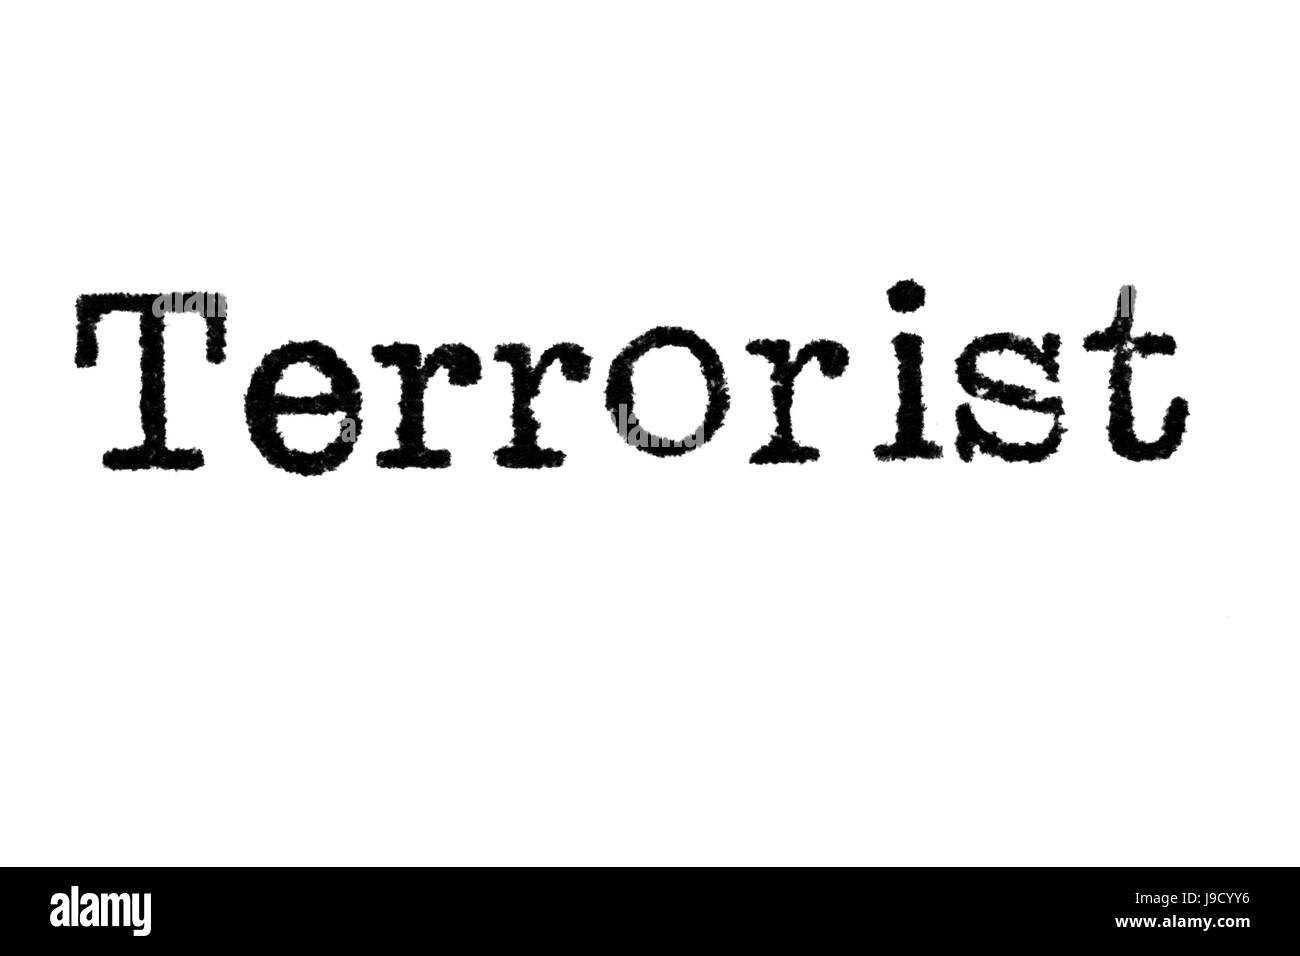 The word 'Terrorist' from a typewriter on a white background - Stock Image